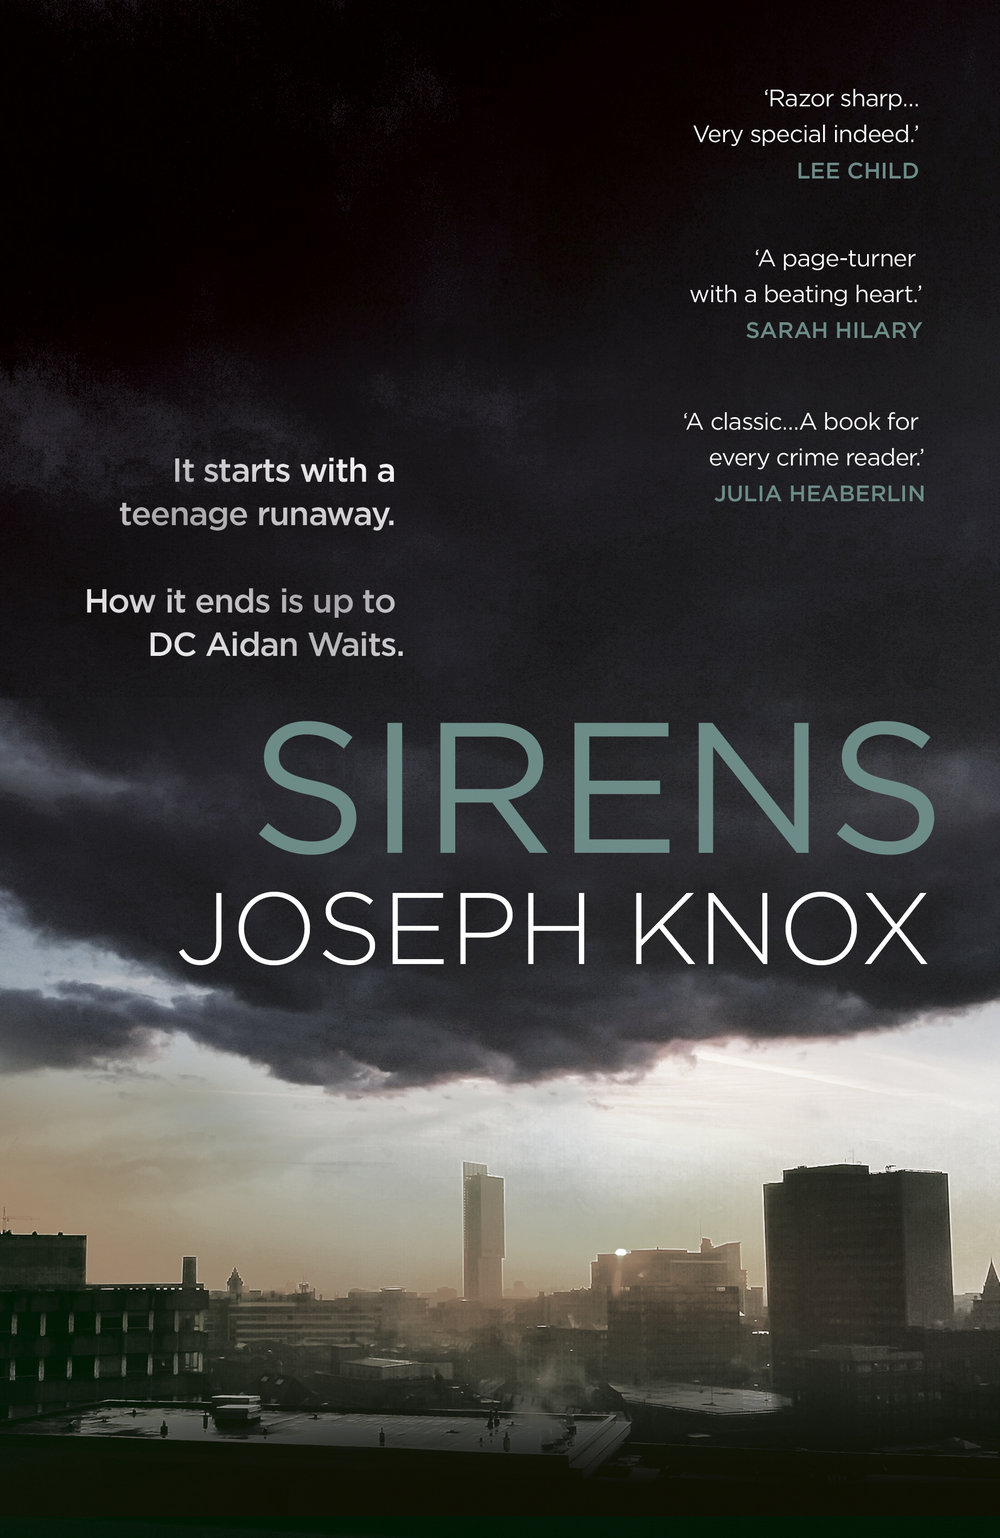 Sirens reviewed: - 'Razor-sharp urban noir – very special indeed.' (Lee Child)'Thrilling, breathless stuff.' (The Observer)'Sirens immediately feels like a classic, not a debut . . . a book for every crime fan.' (Julia Heaberlin, author of Black Eyed Susans)'Sirens is the best British crime debut of the last five years.' (Crimescene Magazine) 'Sirens is a powerhouse of noir. Joseph Knox owns Manchester and paints it in all its grimy colours.' (Val McDermid)'Manchester throbs with lowlife in this startling debut . . . a page-turner with a beating heart. I loved it.' (Sarah Hilary)'Knox presents the city as pungently and uncompromisingly as Ian Rankin does Edinburgh.' (The Guardian)'A firecracker of a crime tale. His writing is taut, atmospheric and studded with eye-catching descriptions. An arresting new talent.' (Metro)